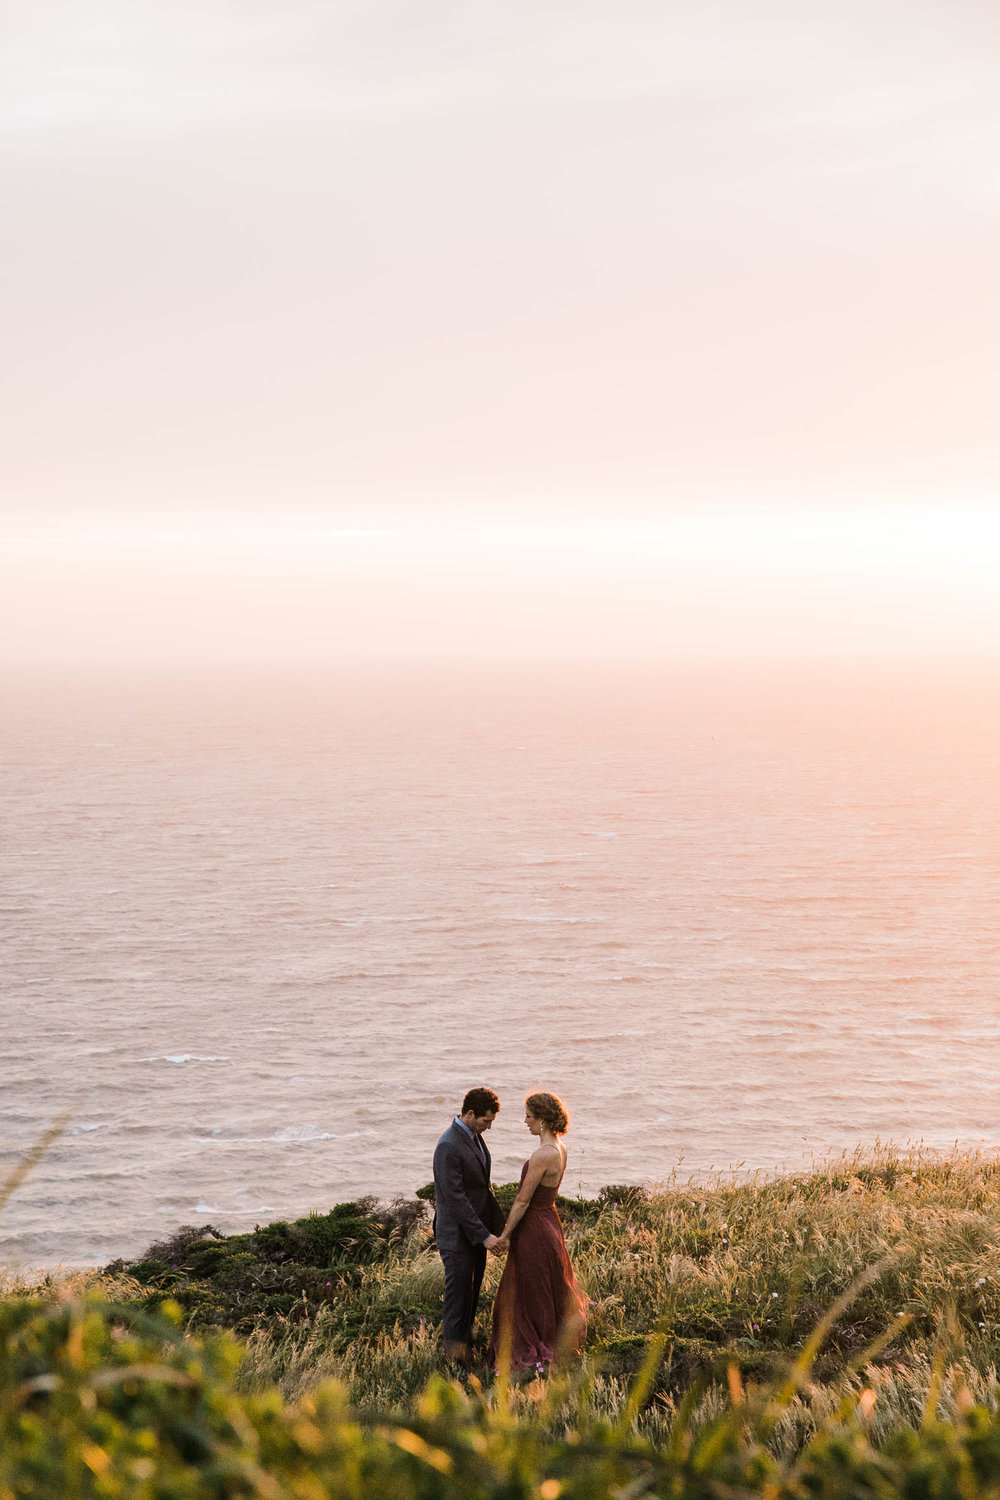 marin headland land sea adventure elopement